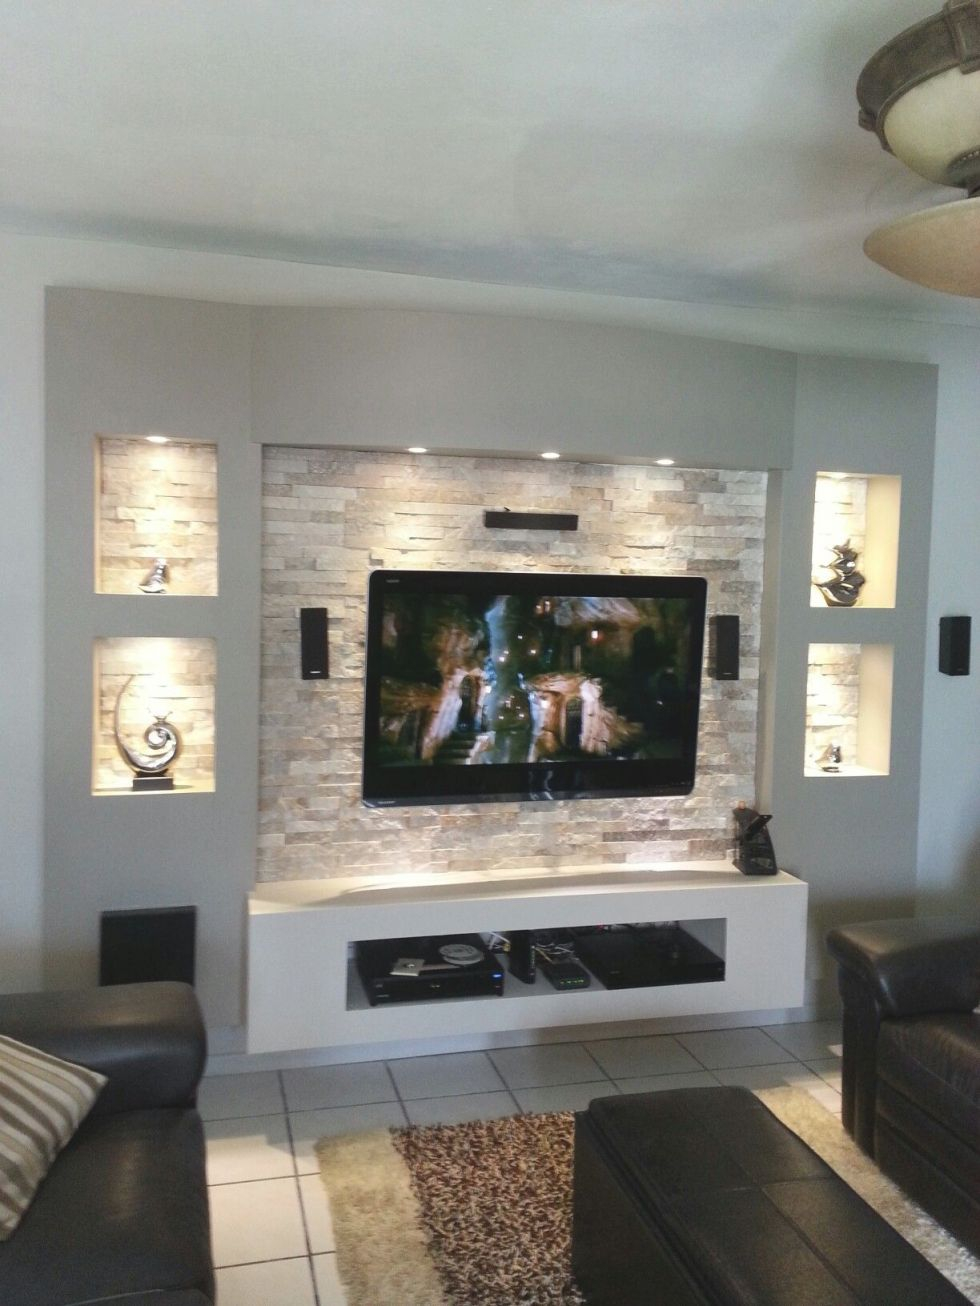 Innovación Tv Unit My Own Projects In 2019 Tv Wall Decor In Modern Tv Stand Ideas For Living Room Ideas 2019 Awesome Decors